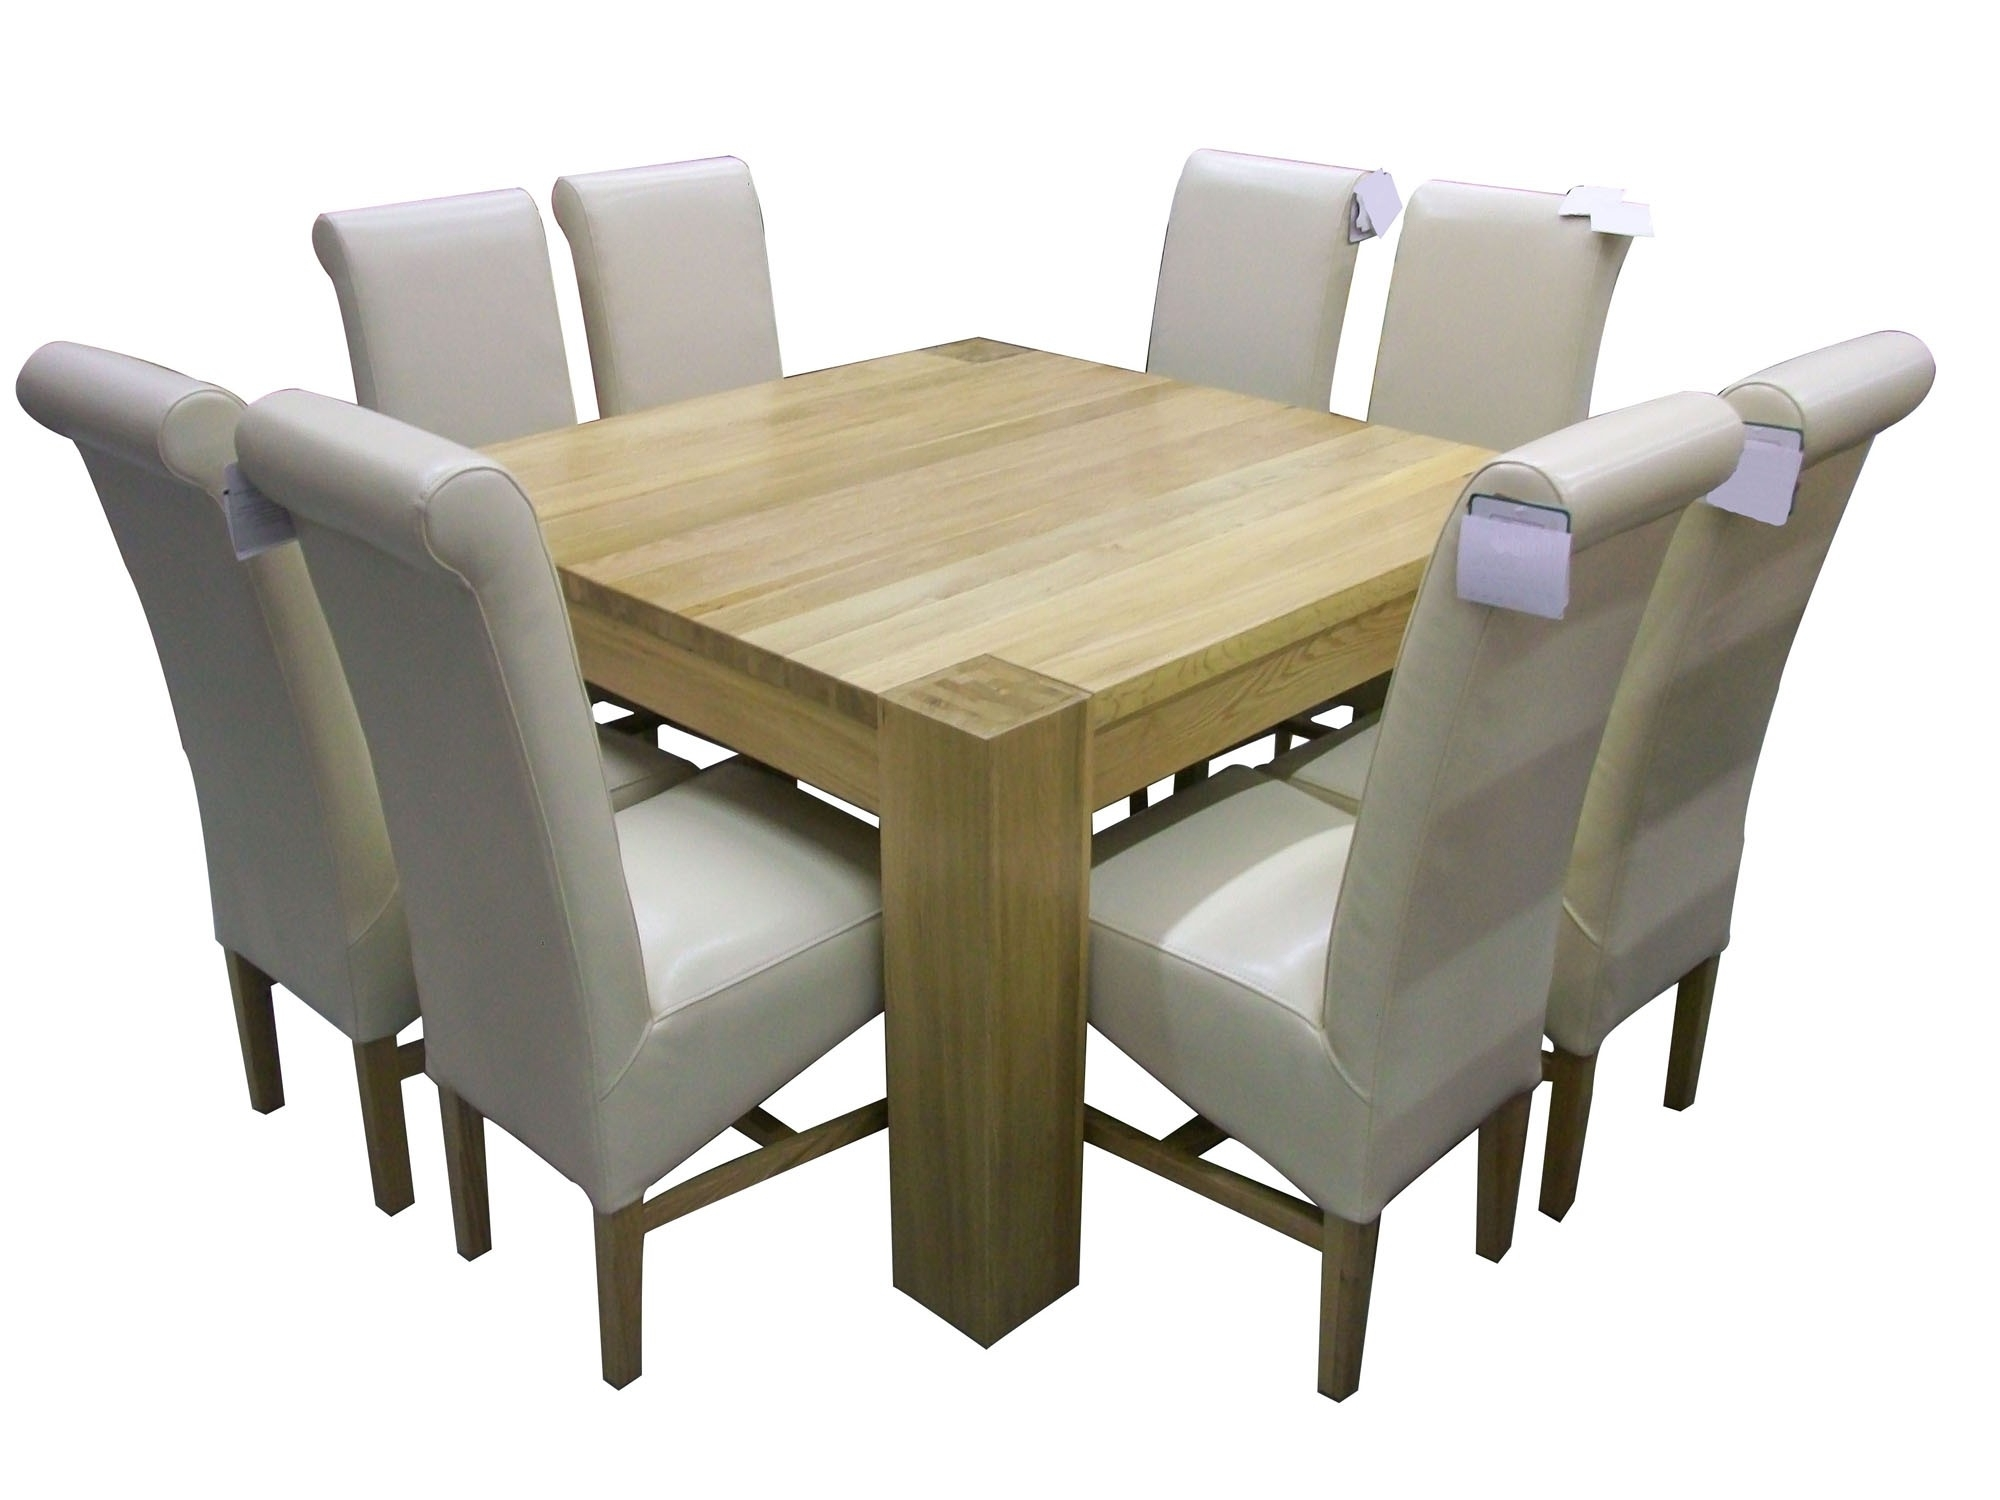 White Dining Tables 8 Seater With Regard To Most Up To Date Awesome 8 Seater Dining Table Bathroom Accessories Charming At  (View 24 of 25)